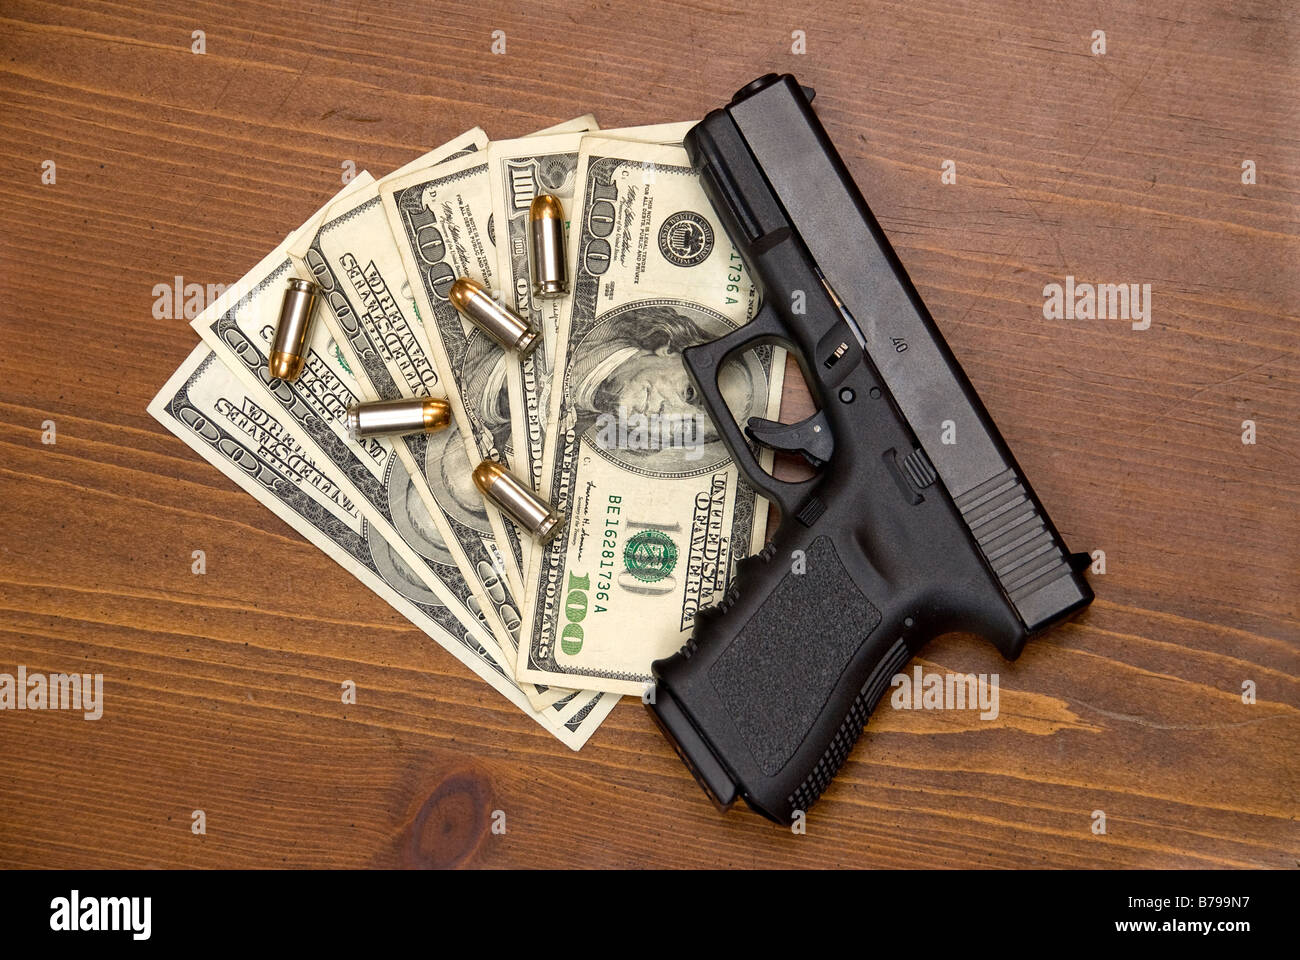 Bullets cash and a gun on a table - Stock Image